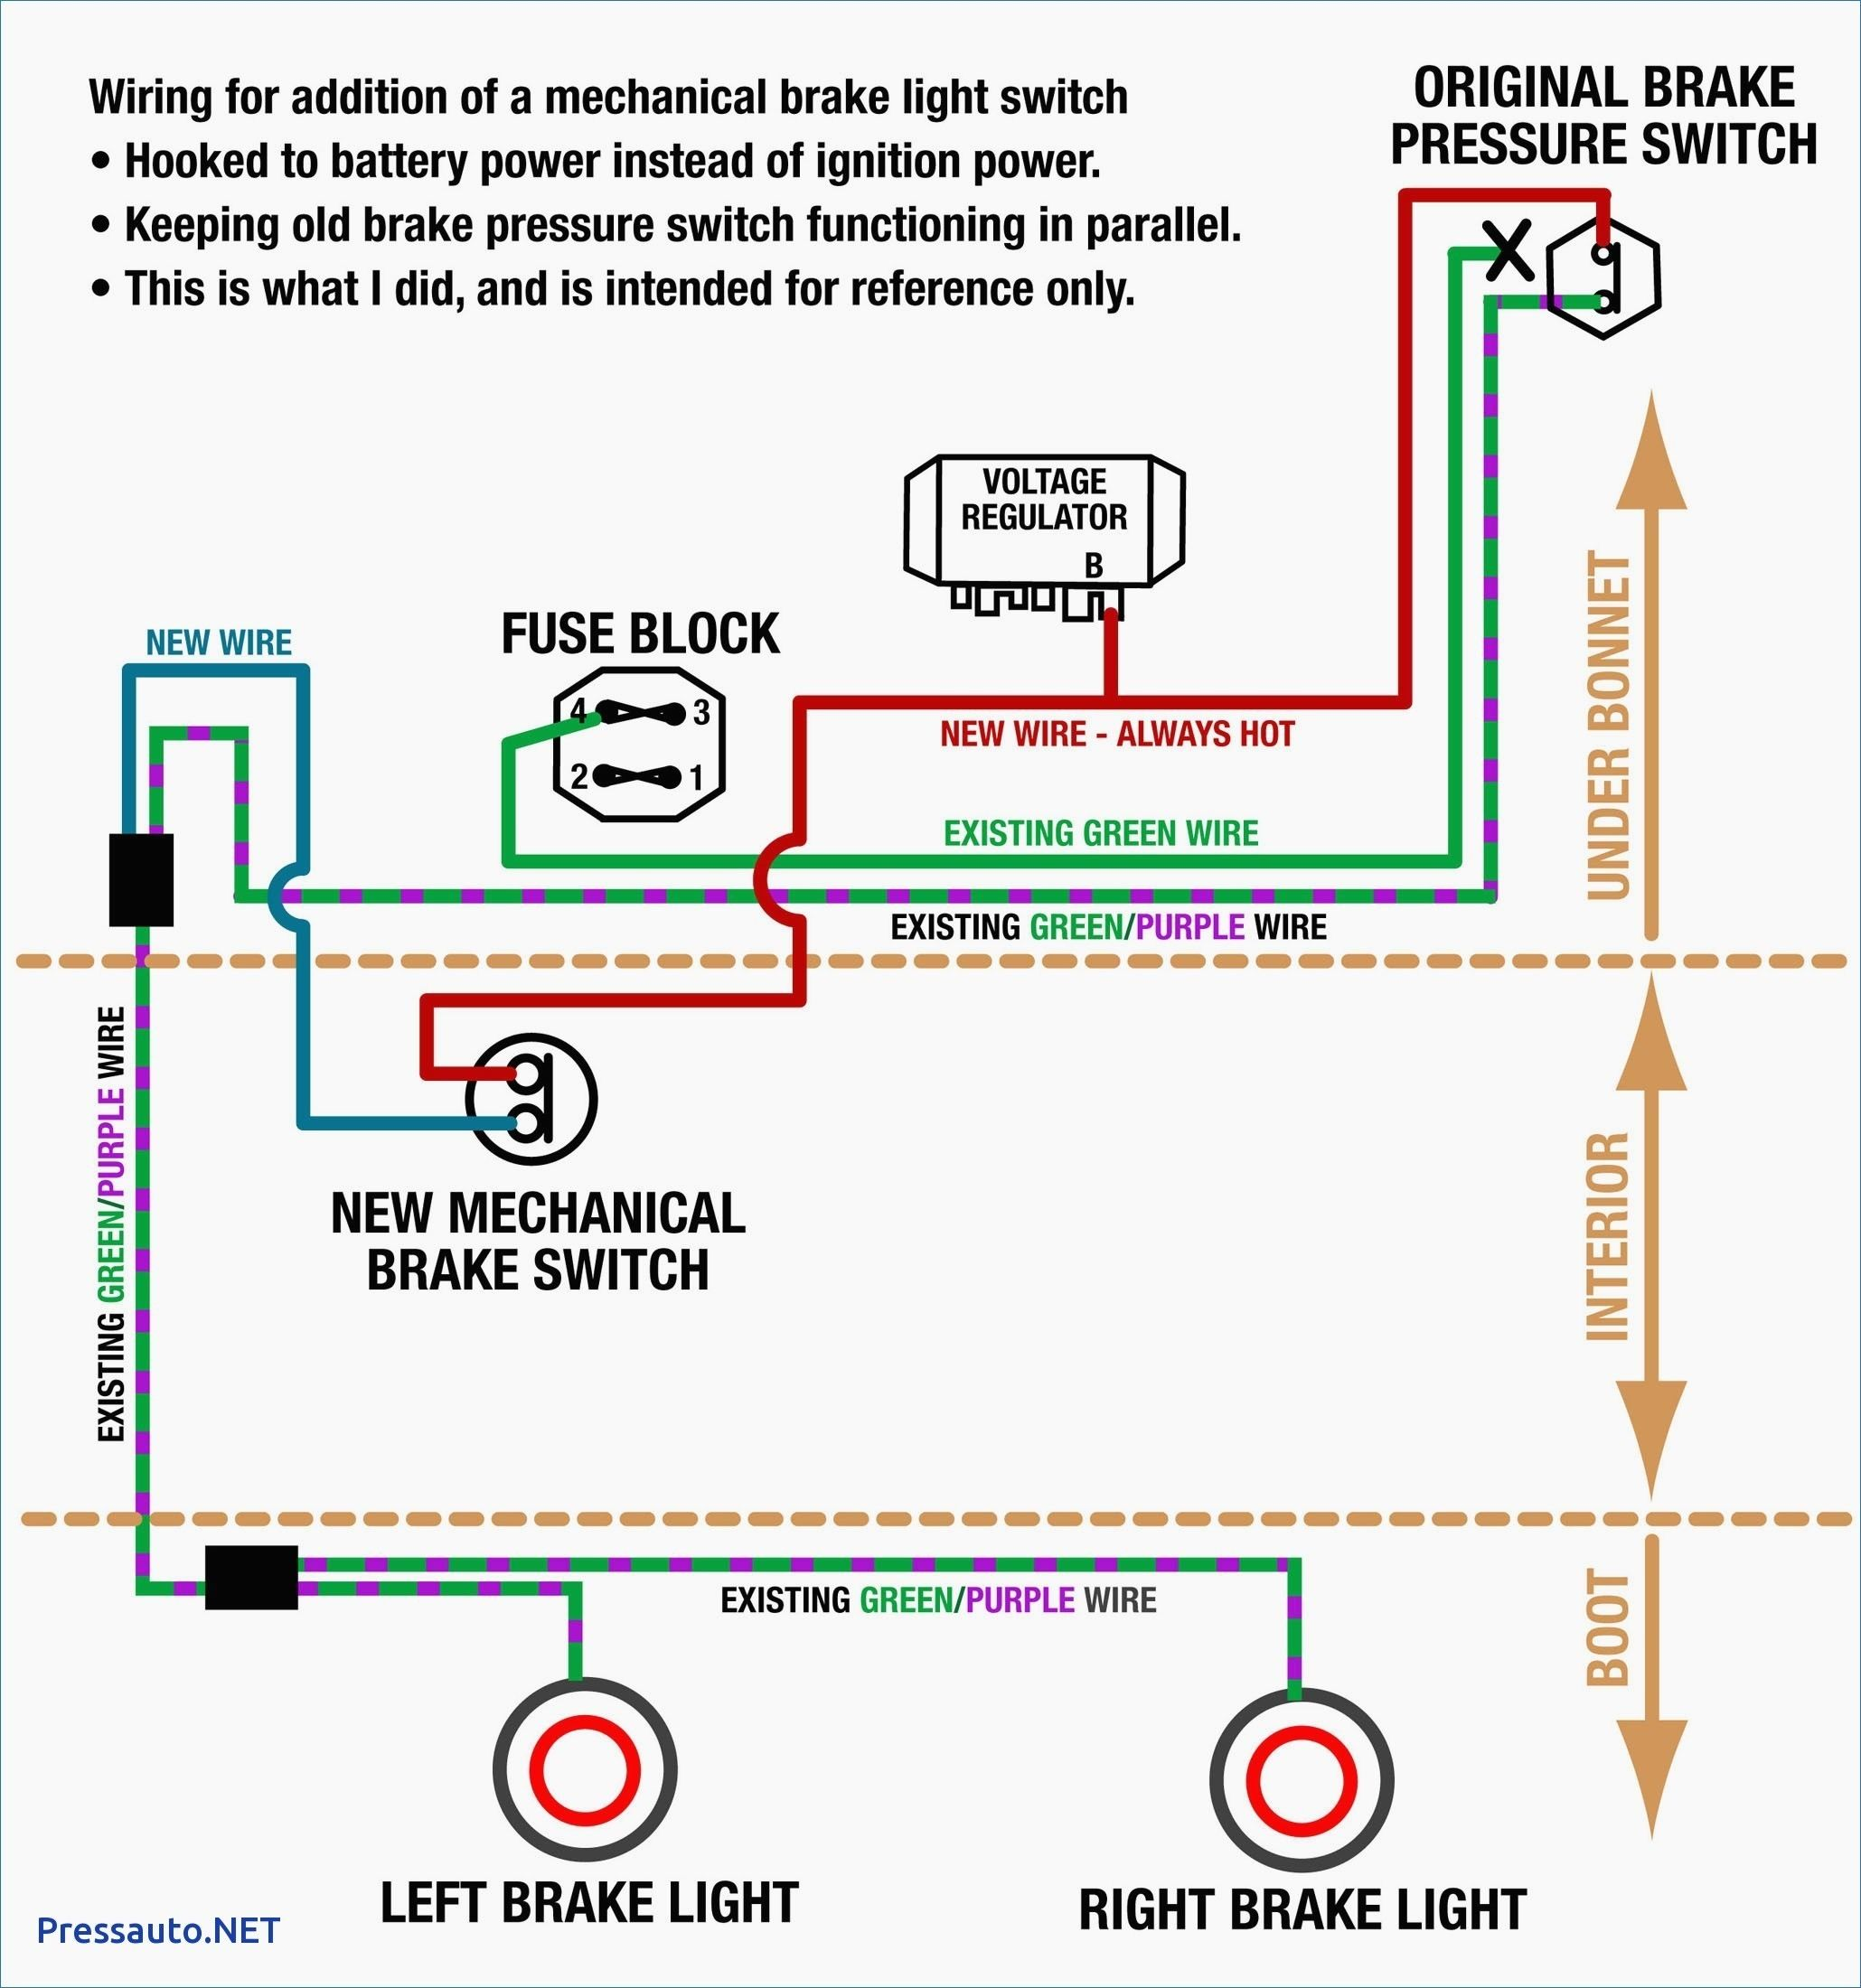 Grote Lights Wiring Diagram In 2020 Light Switch Wiring Switch Words Light Switch